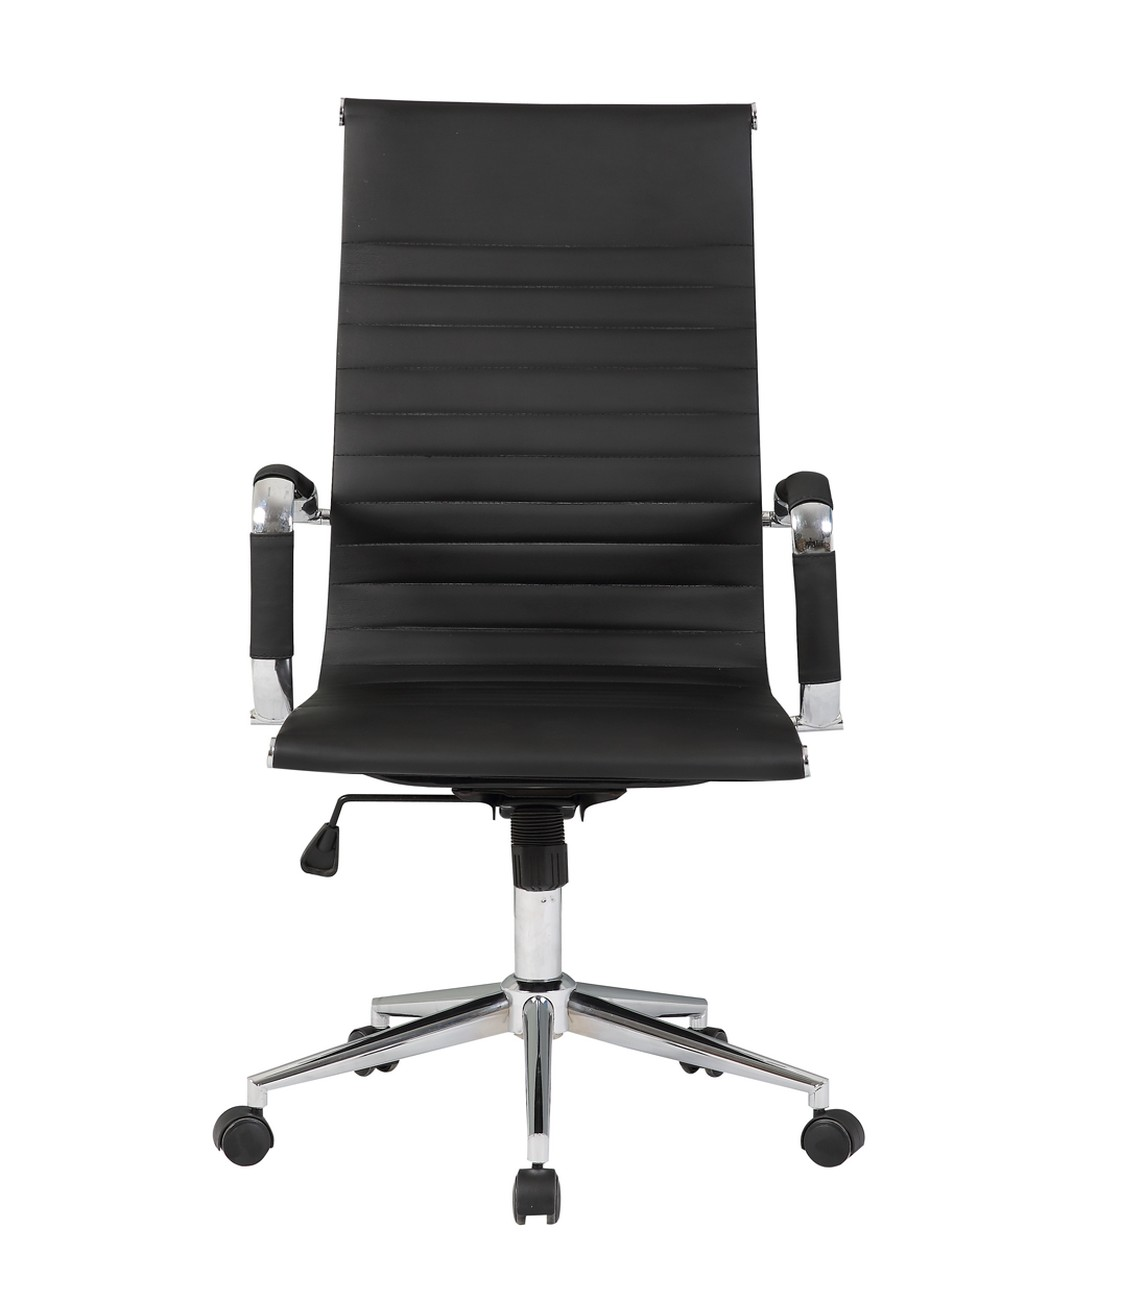 high quality office chairs ergonomic outdoor chair covers walmart ribbed pu leather back executive computer